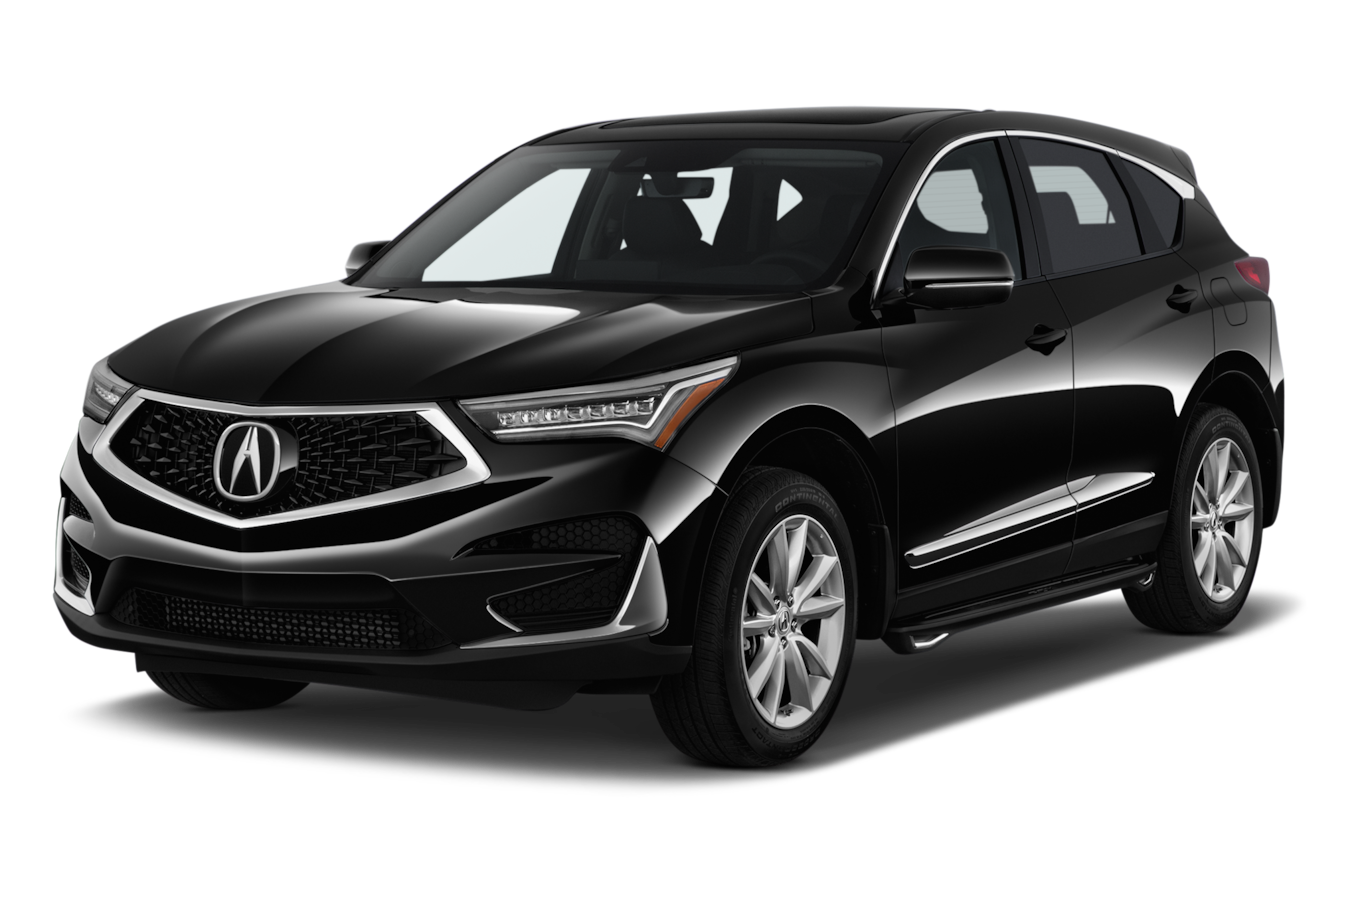 33 Best Review 2019 Acura Warranty Redesign and Concept for 2019 Acura Warranty